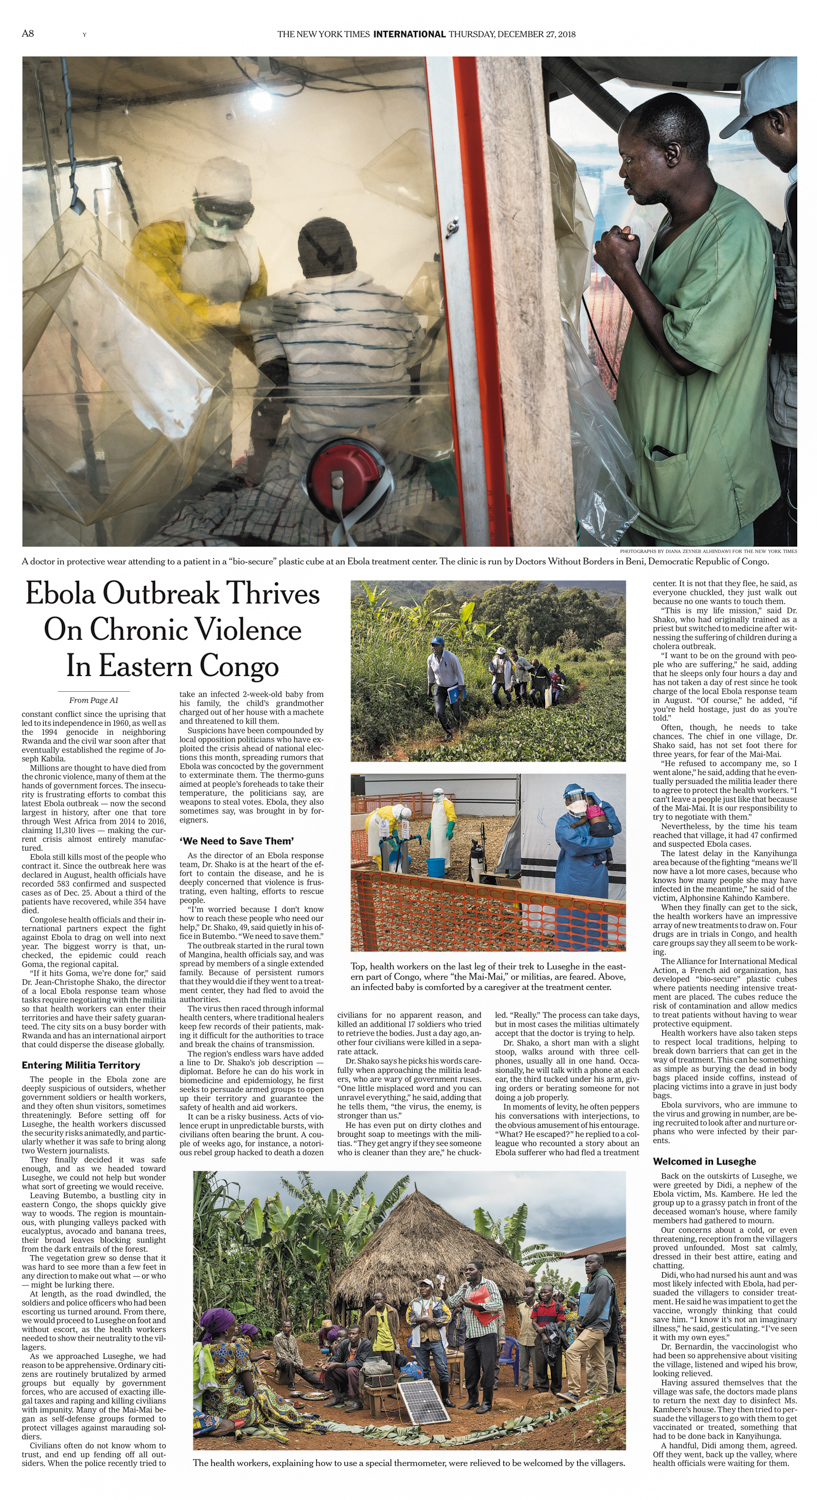 Diana Zeyneb Alhindawi_2018_12_28_New York Times national edition_page A4_ebola congo drc_lower res.jpg